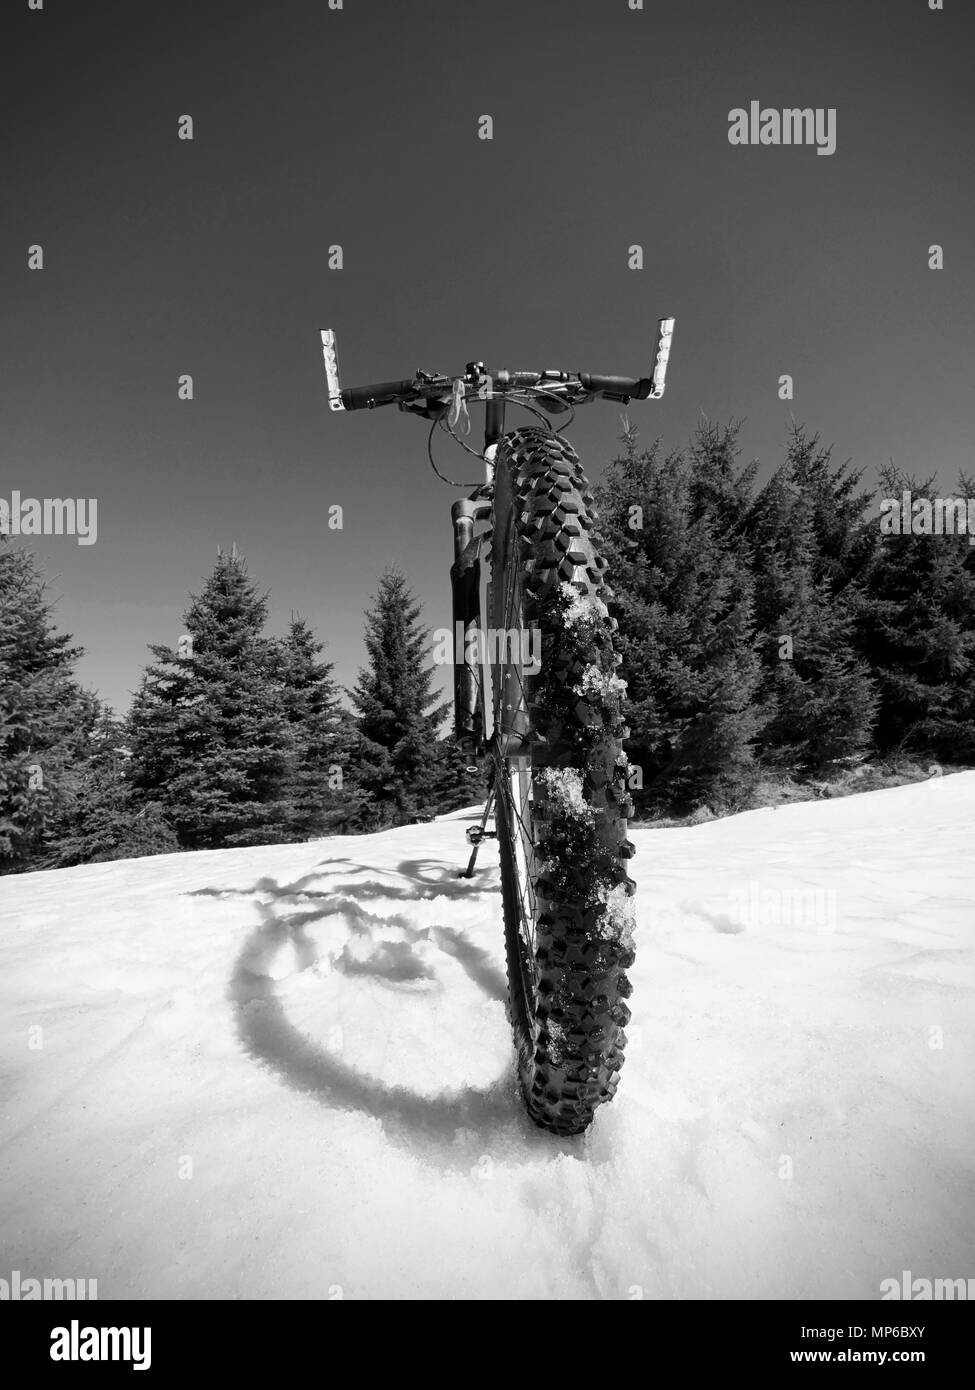 Wide view photo of mountain bike in deep snow. Winter mountains with road lost under snow. - Stock Image